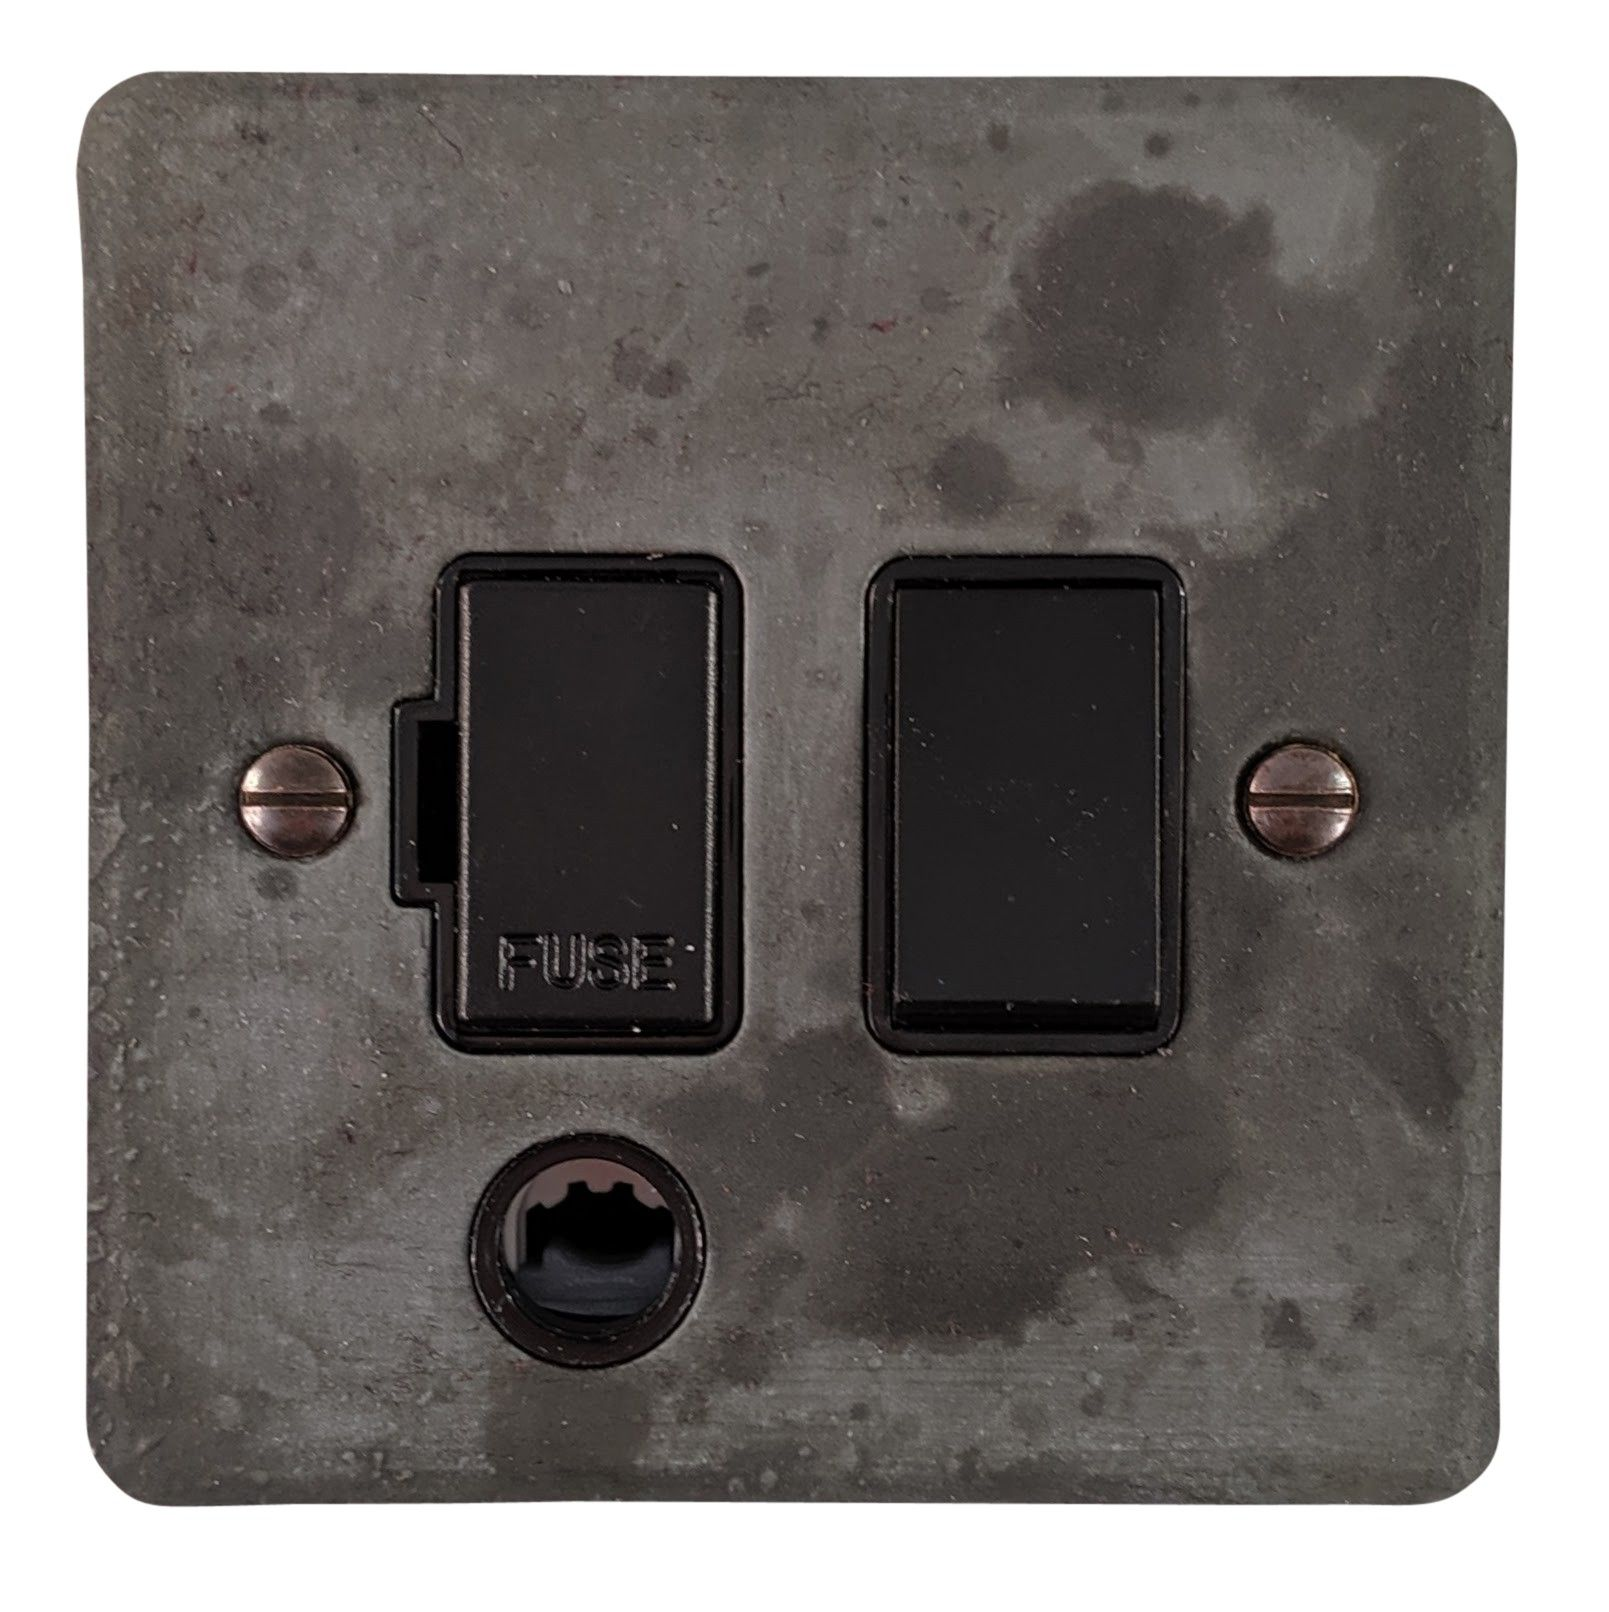 G&H FRP56B Flat Plate Rustic Pewter 1 Gang Fused Spur 13A Switched & Flex Outlet